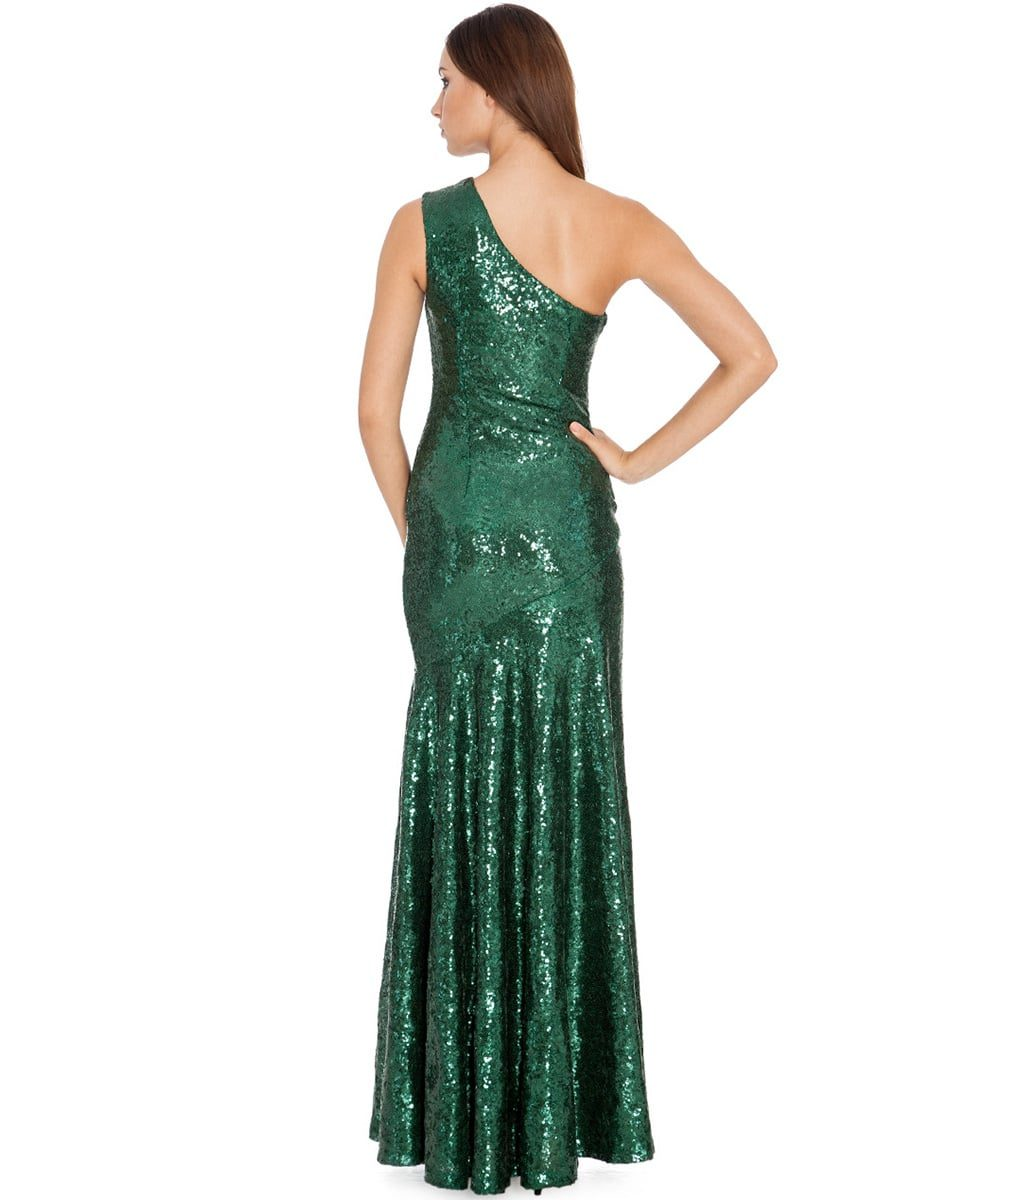 City Goddess - Emerald Green One-Shoulder Sequins Gown